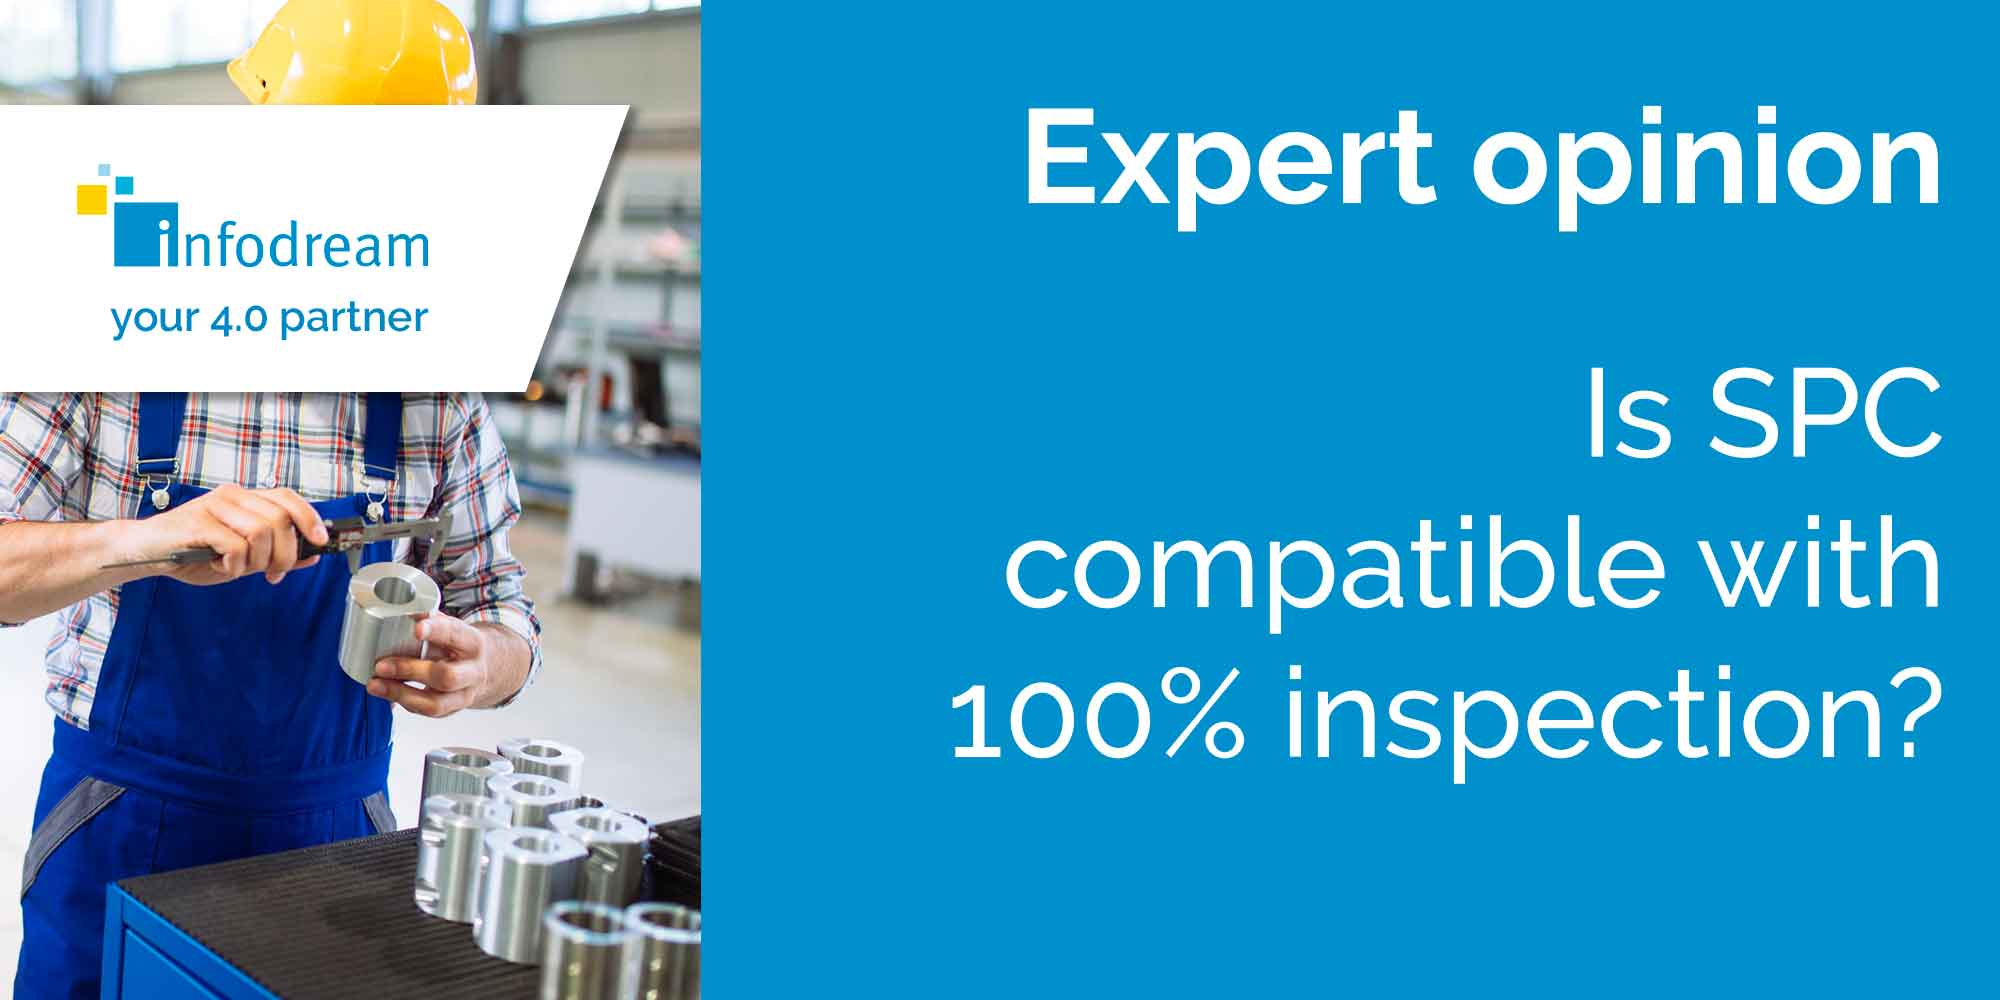 IS SPC Compatible With 100% Inspection?